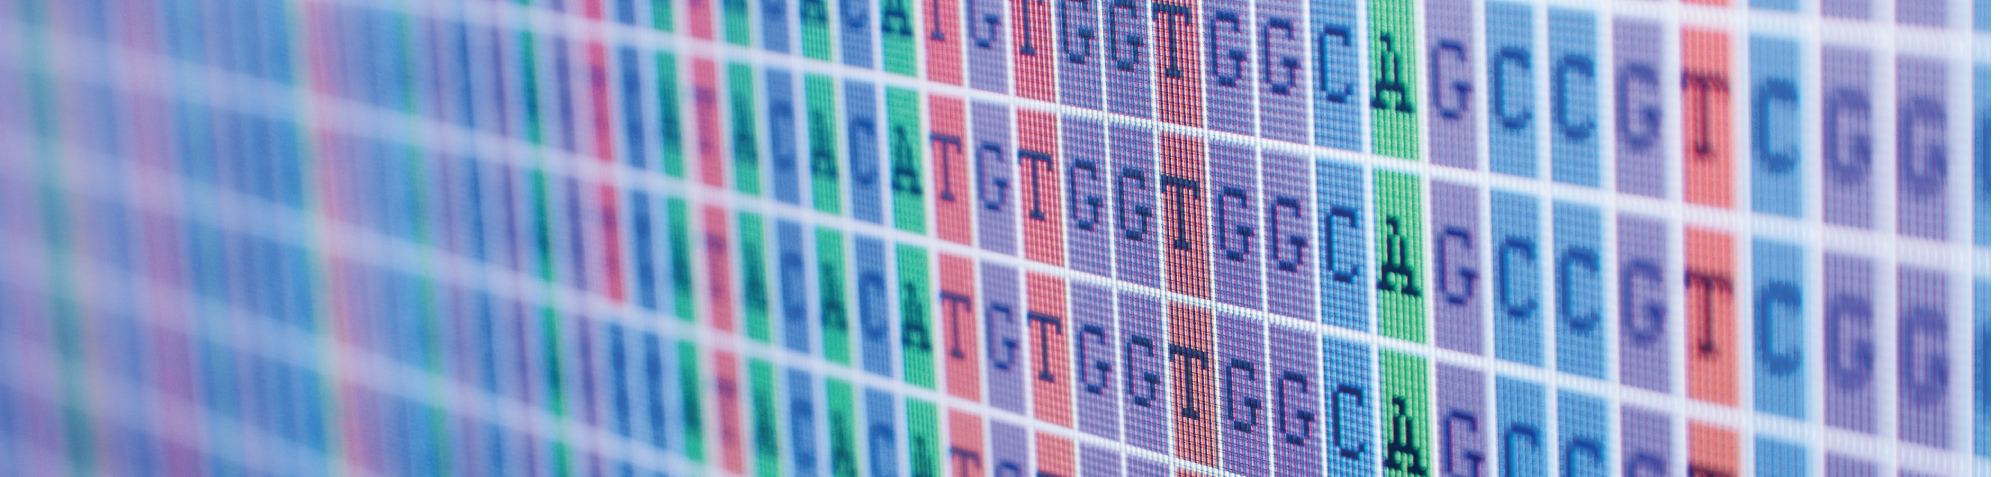 Cancer Diagnostics: Targeted Gene Panels for Next Generation of Sequencing